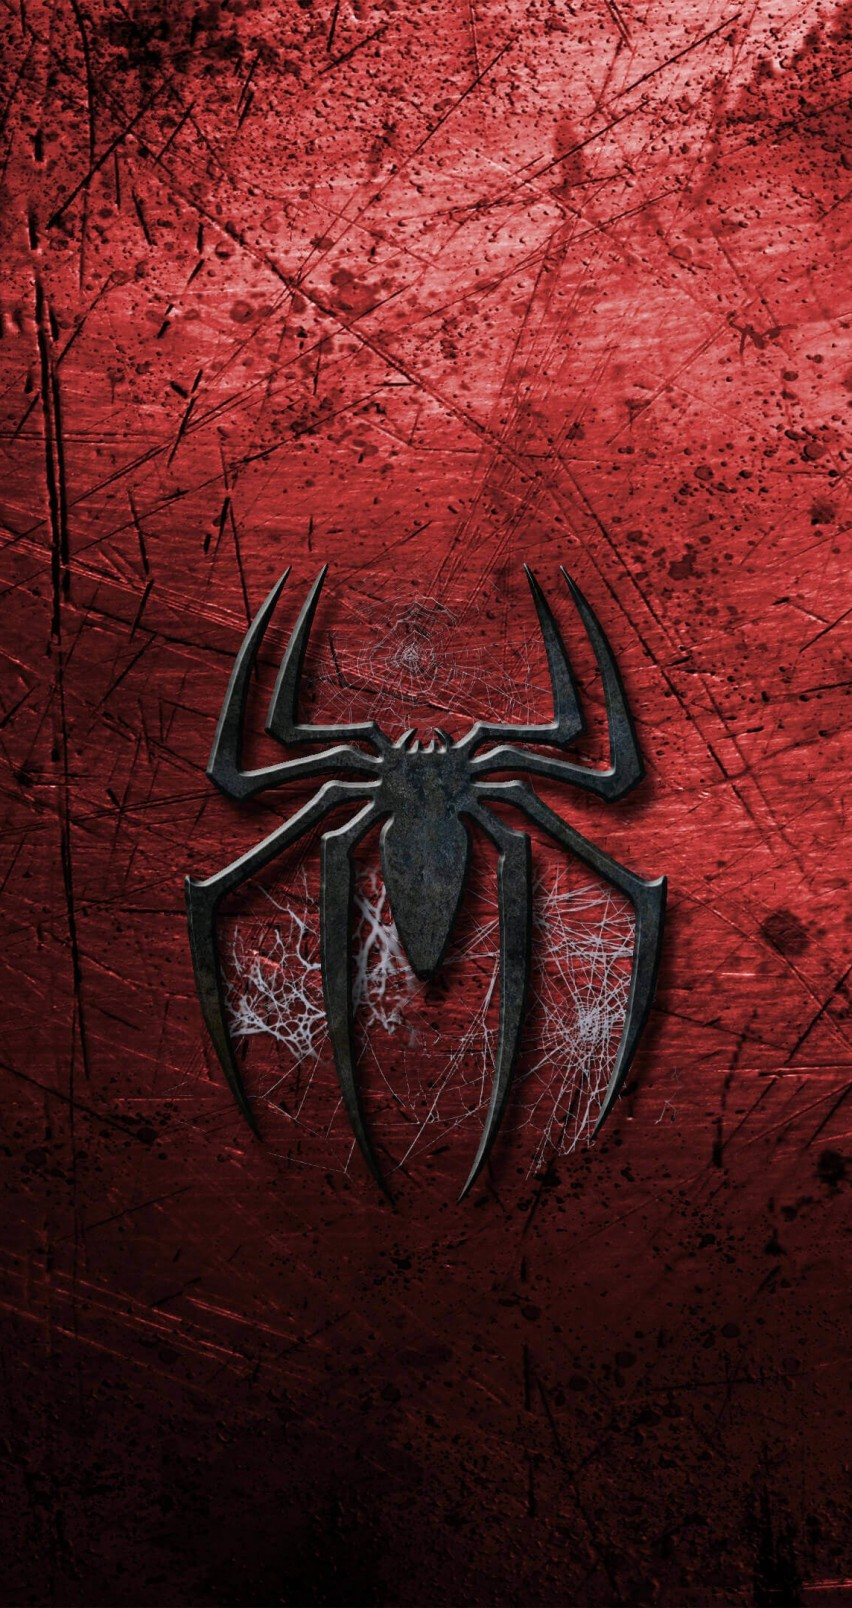 Grungy Spider-Man Logo Wallpaper for Apple iPhone 6 / 6s